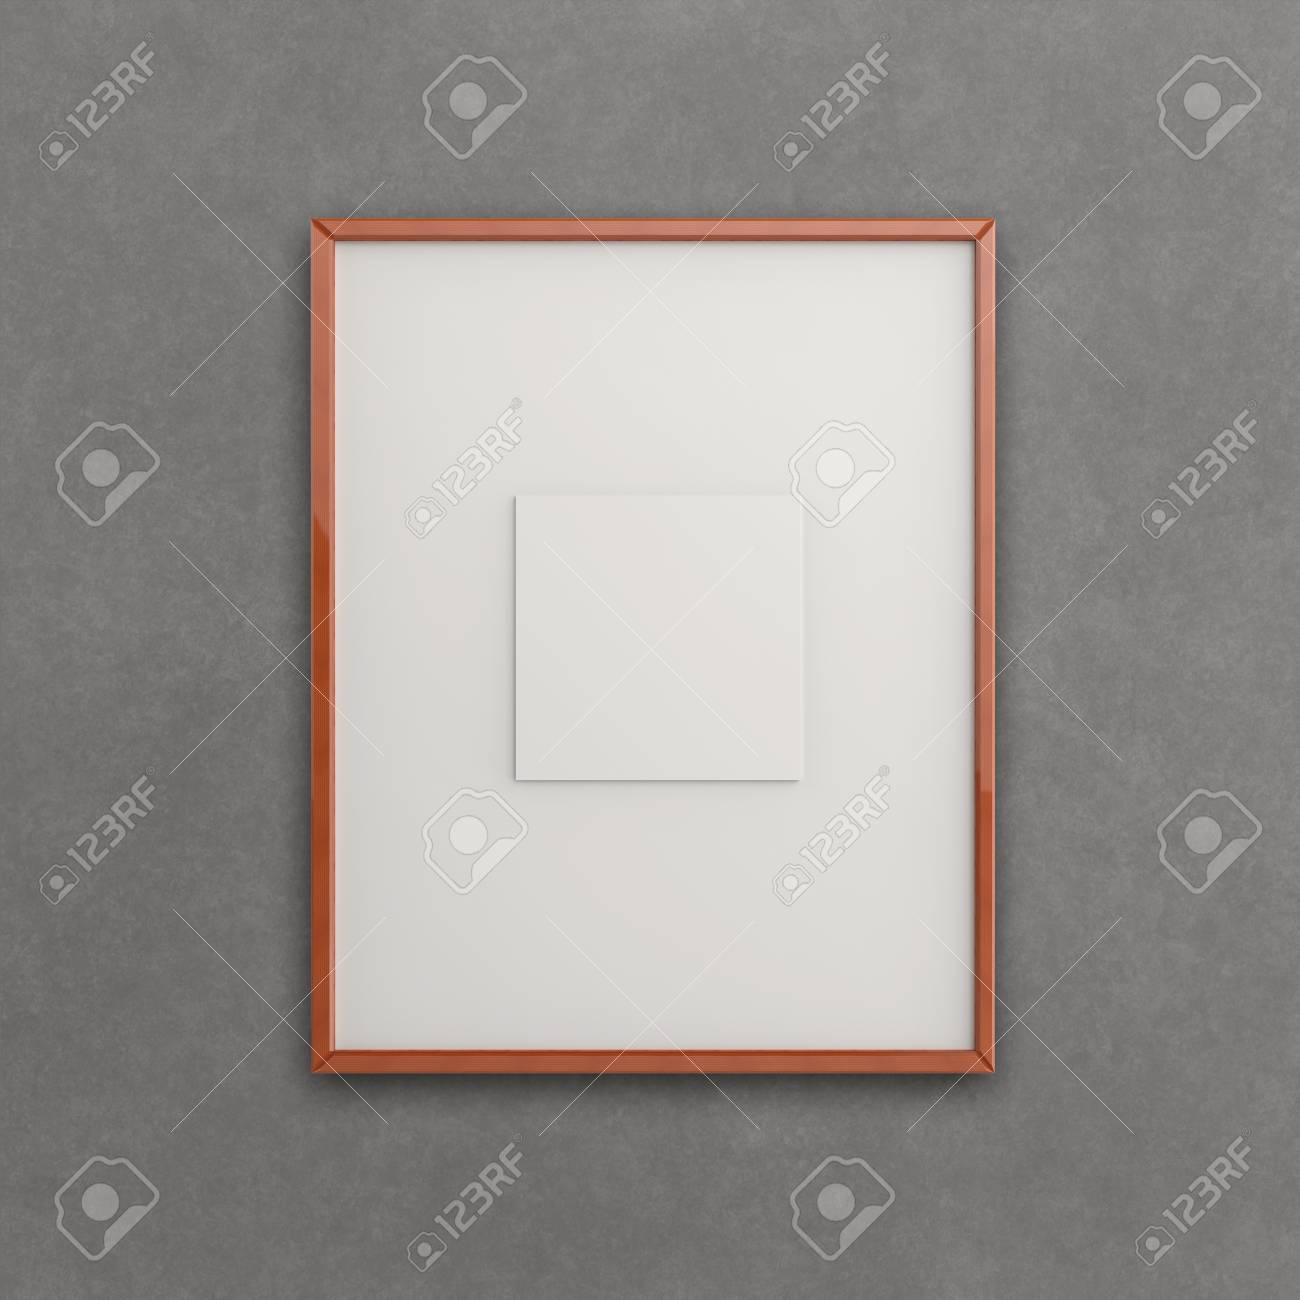 blank modern 3d frame on texture background as concept Stock Photo - 22393310